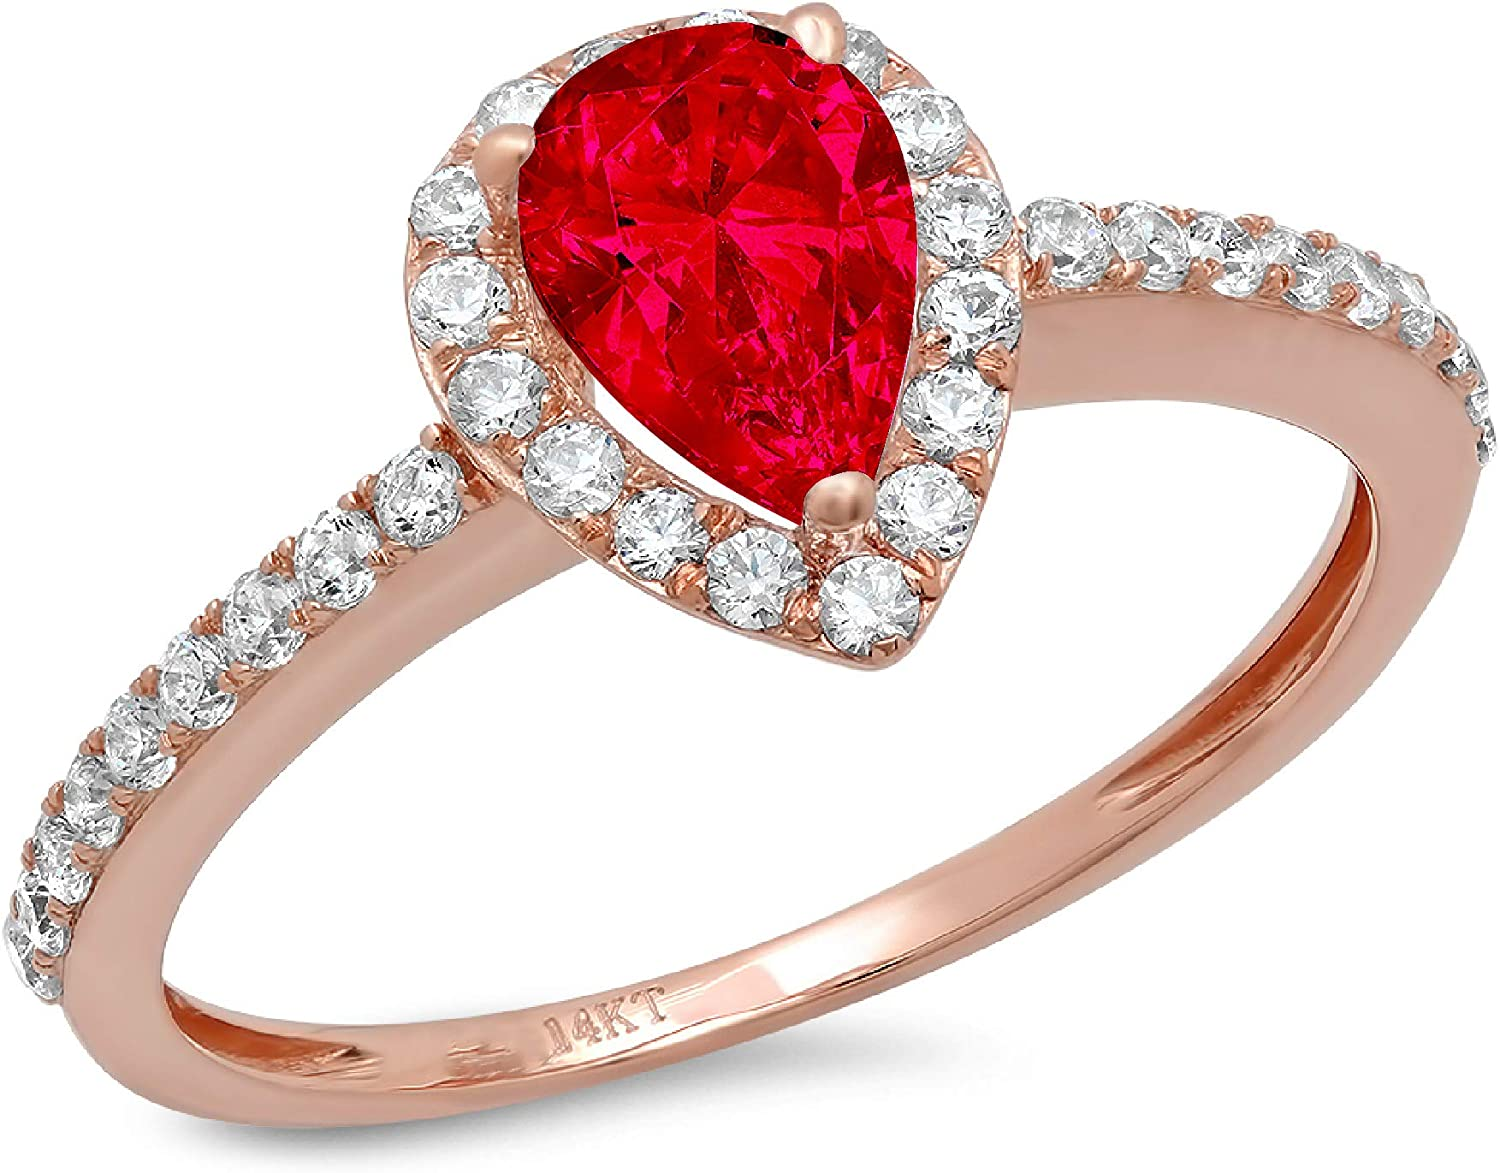 1.16ct Brilliant Pear Cut Solitaire with accent Flawless Ideal VVS1 Simulated CZ Red Ruby Engagement Promise Statement Anniversary Bridal Wedding Designer Ring Solid 14k Rose Gold